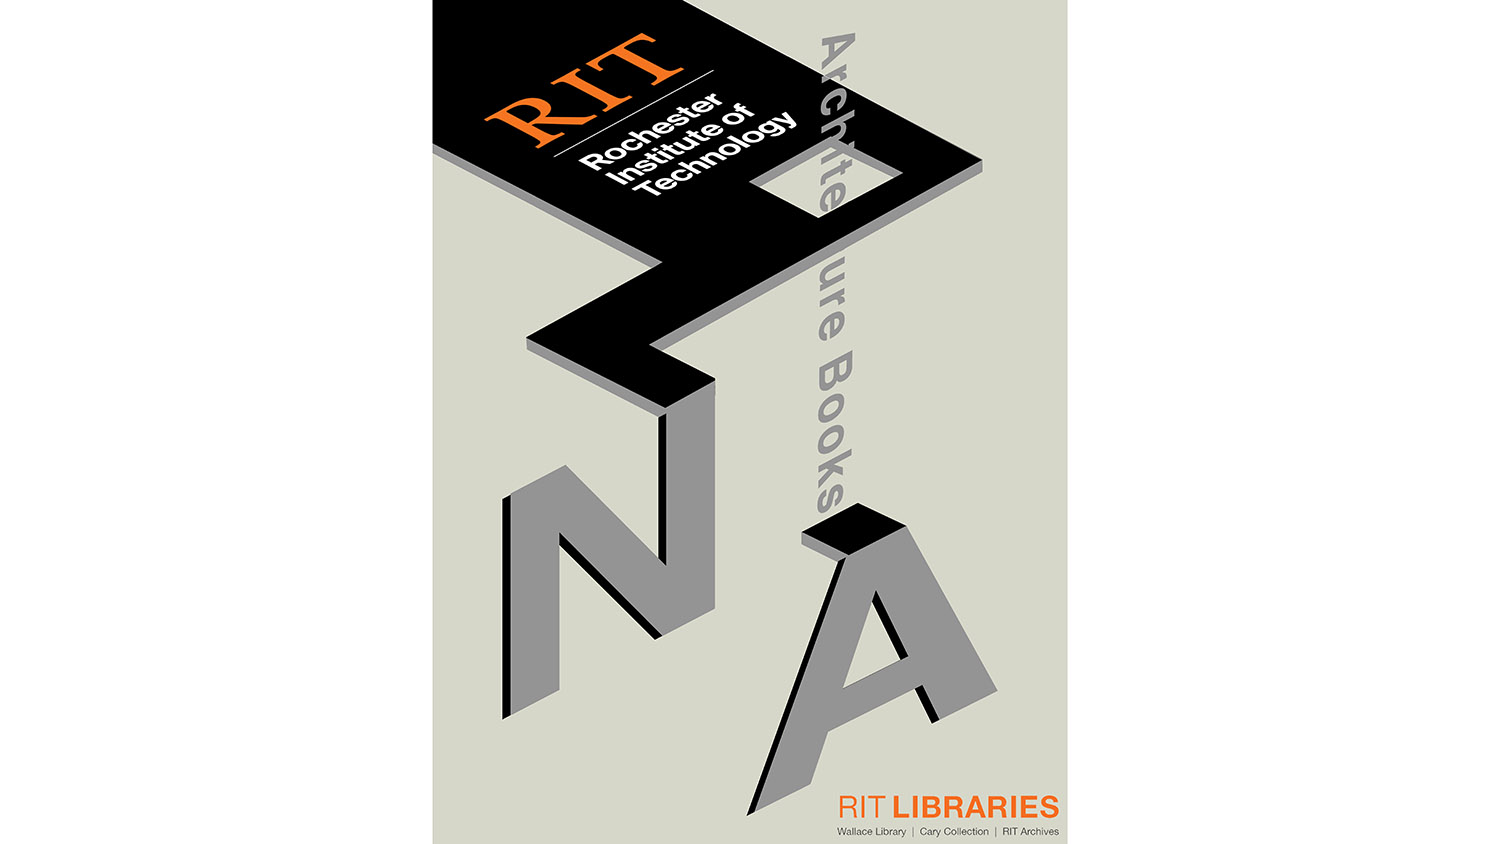 A graphic for RIT Libraries